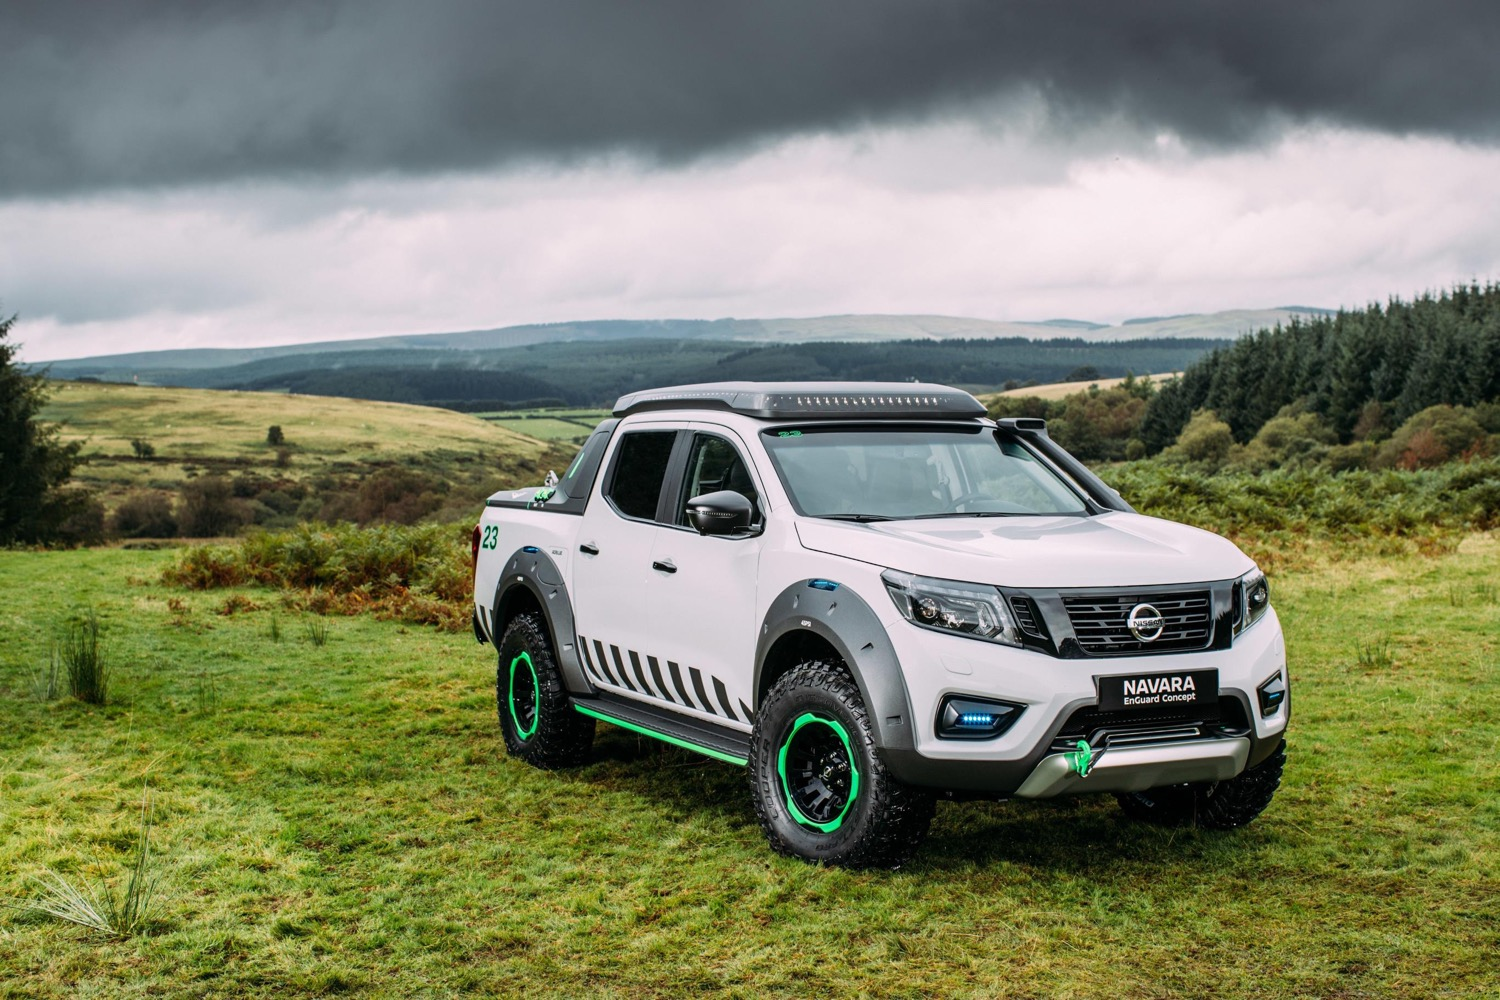 Solar Cars 2017 >> Nissan emergency truck concept: electric-car battery for rescue power